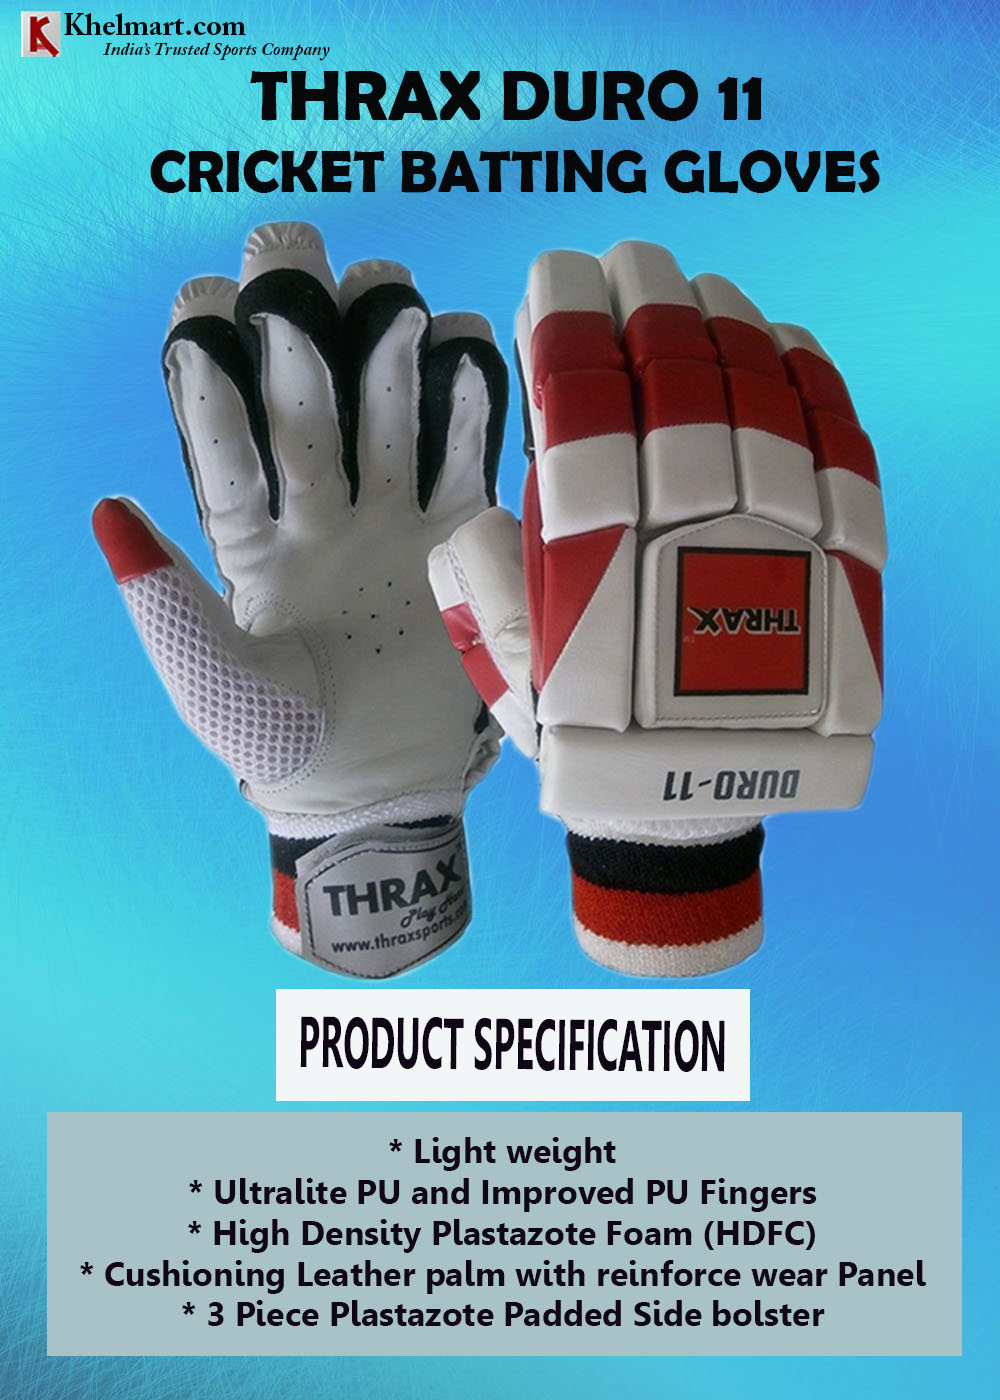 THRAX Duro 11 Cricket Batting Gloves